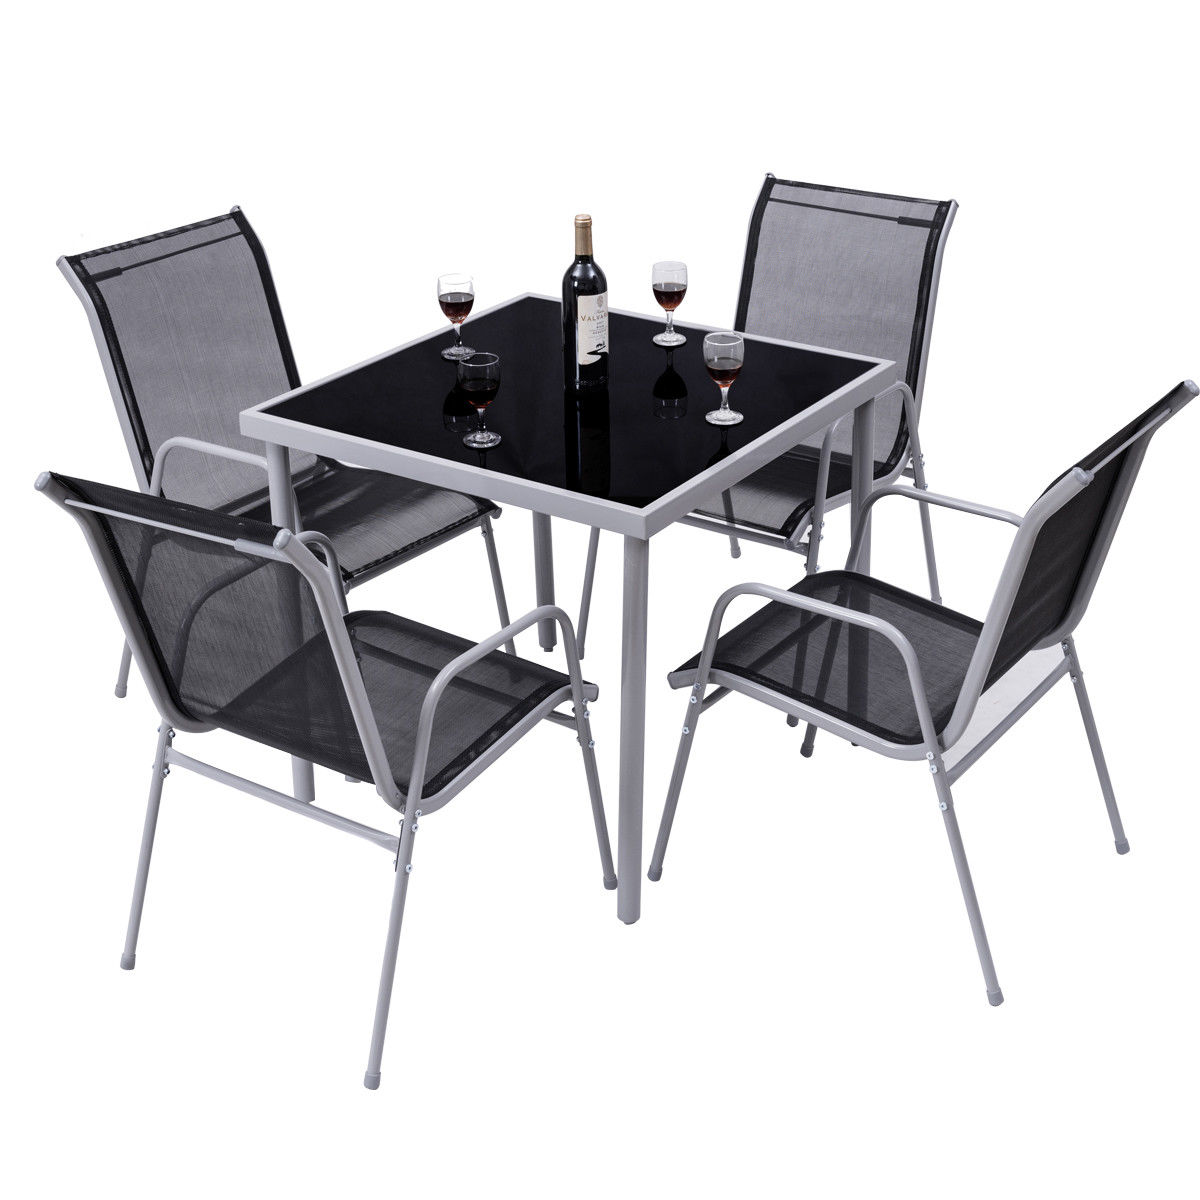 Costway 5 PCS Bistro Set Garden Set of Chairs and Table Outdoor Patio Furniture by Costway